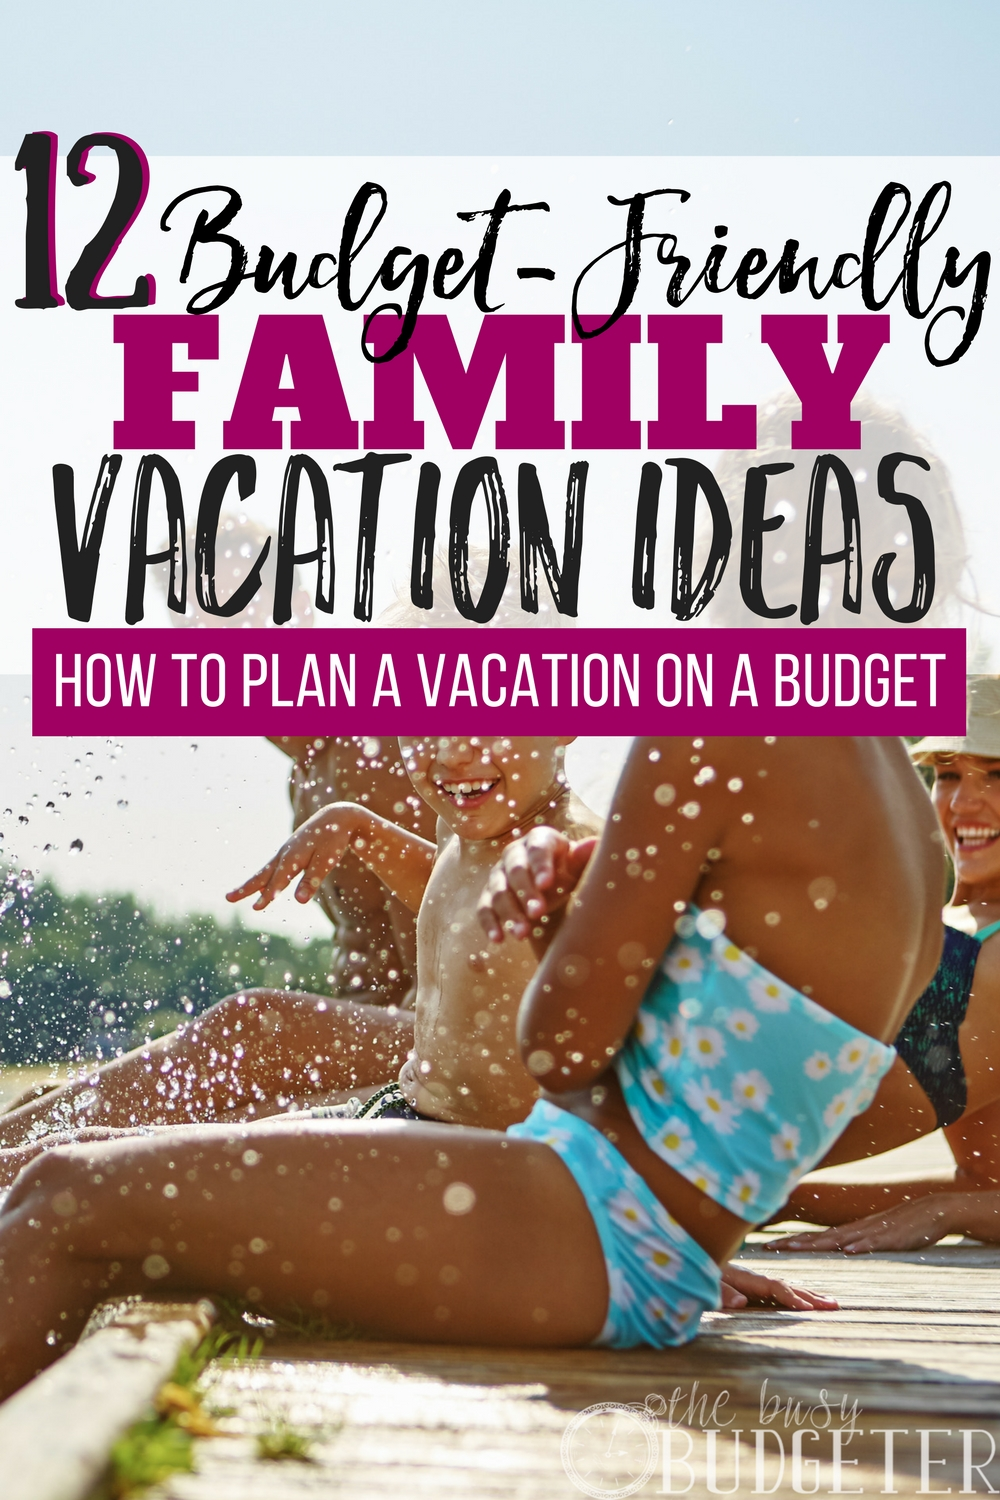 How To Plan A Vacation On A Budget Vacation Ideas Busy Budgeter - Budget vacations